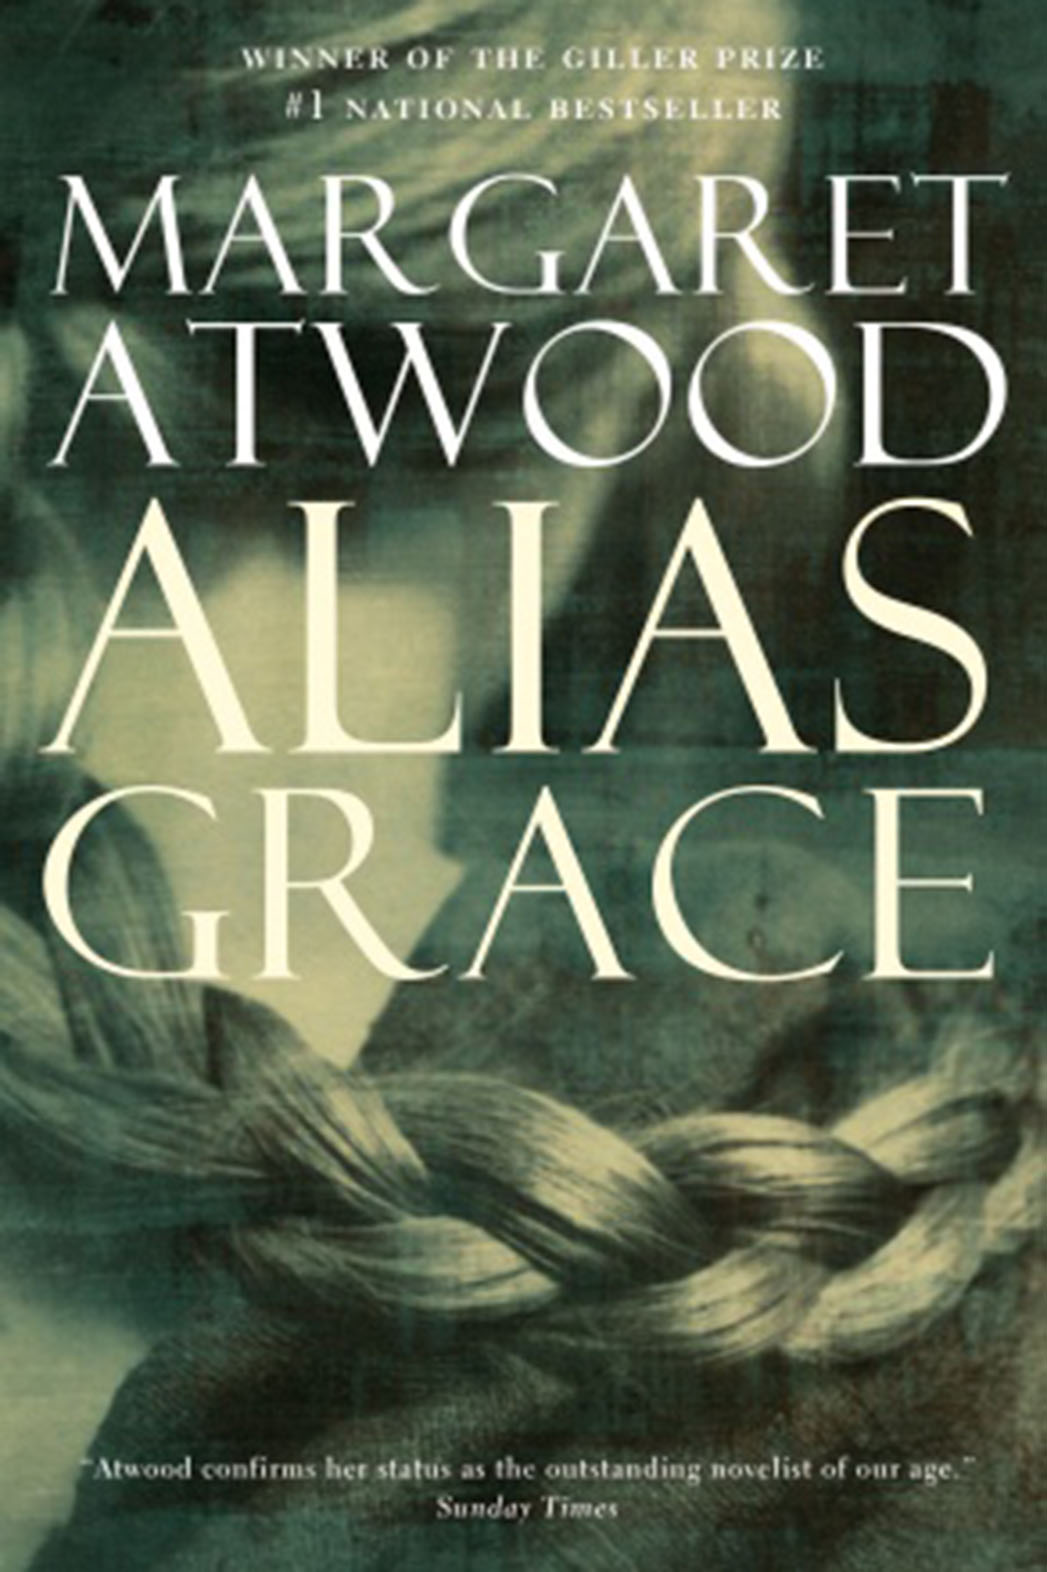 Margaret Atwood's Alias Grace Book Cover P 2016